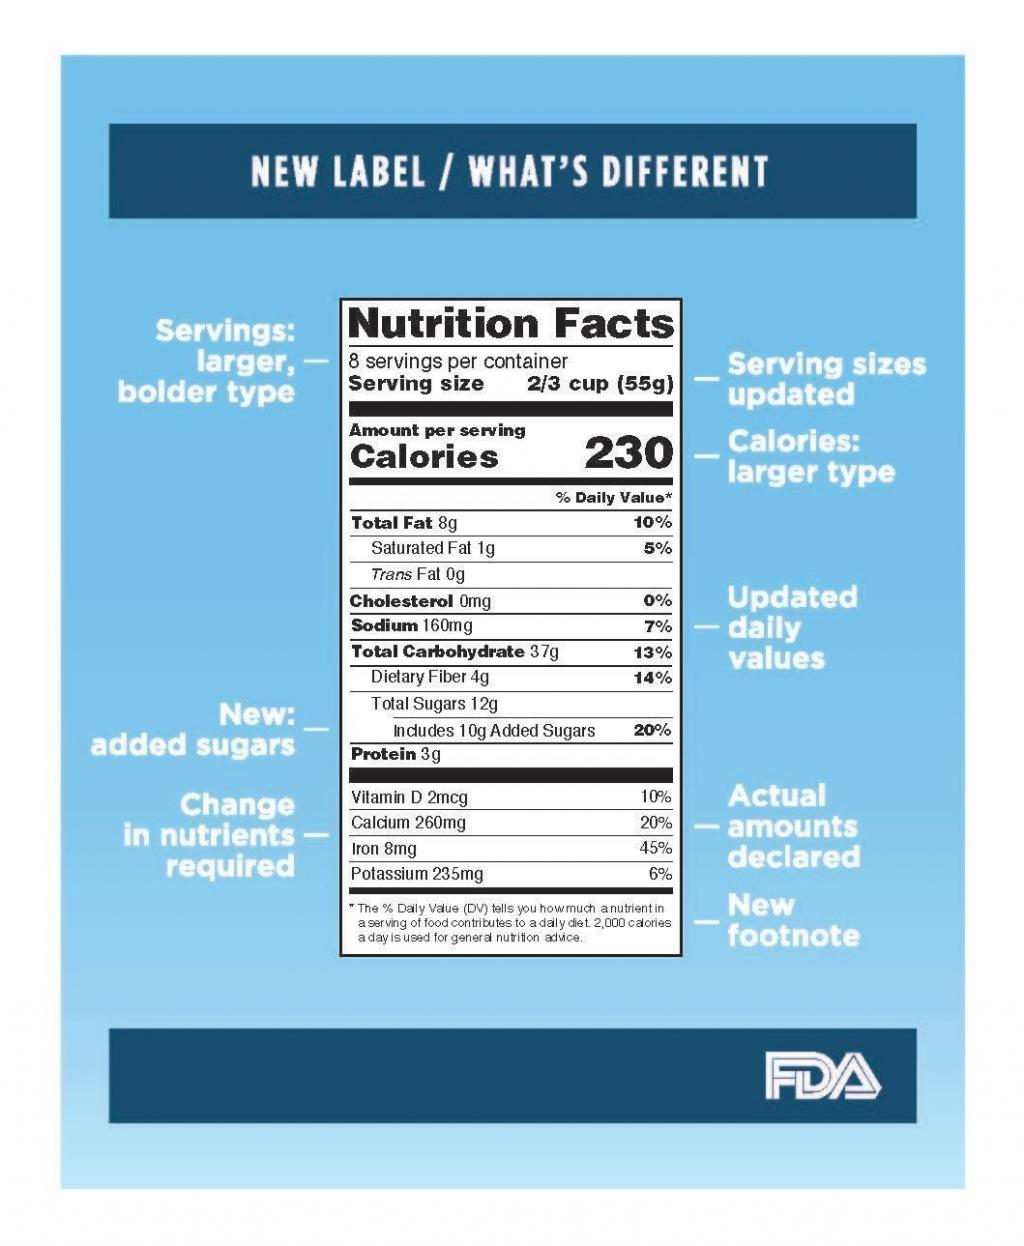 FDA Updates Nutrition Facts Label On Packaged Foods For